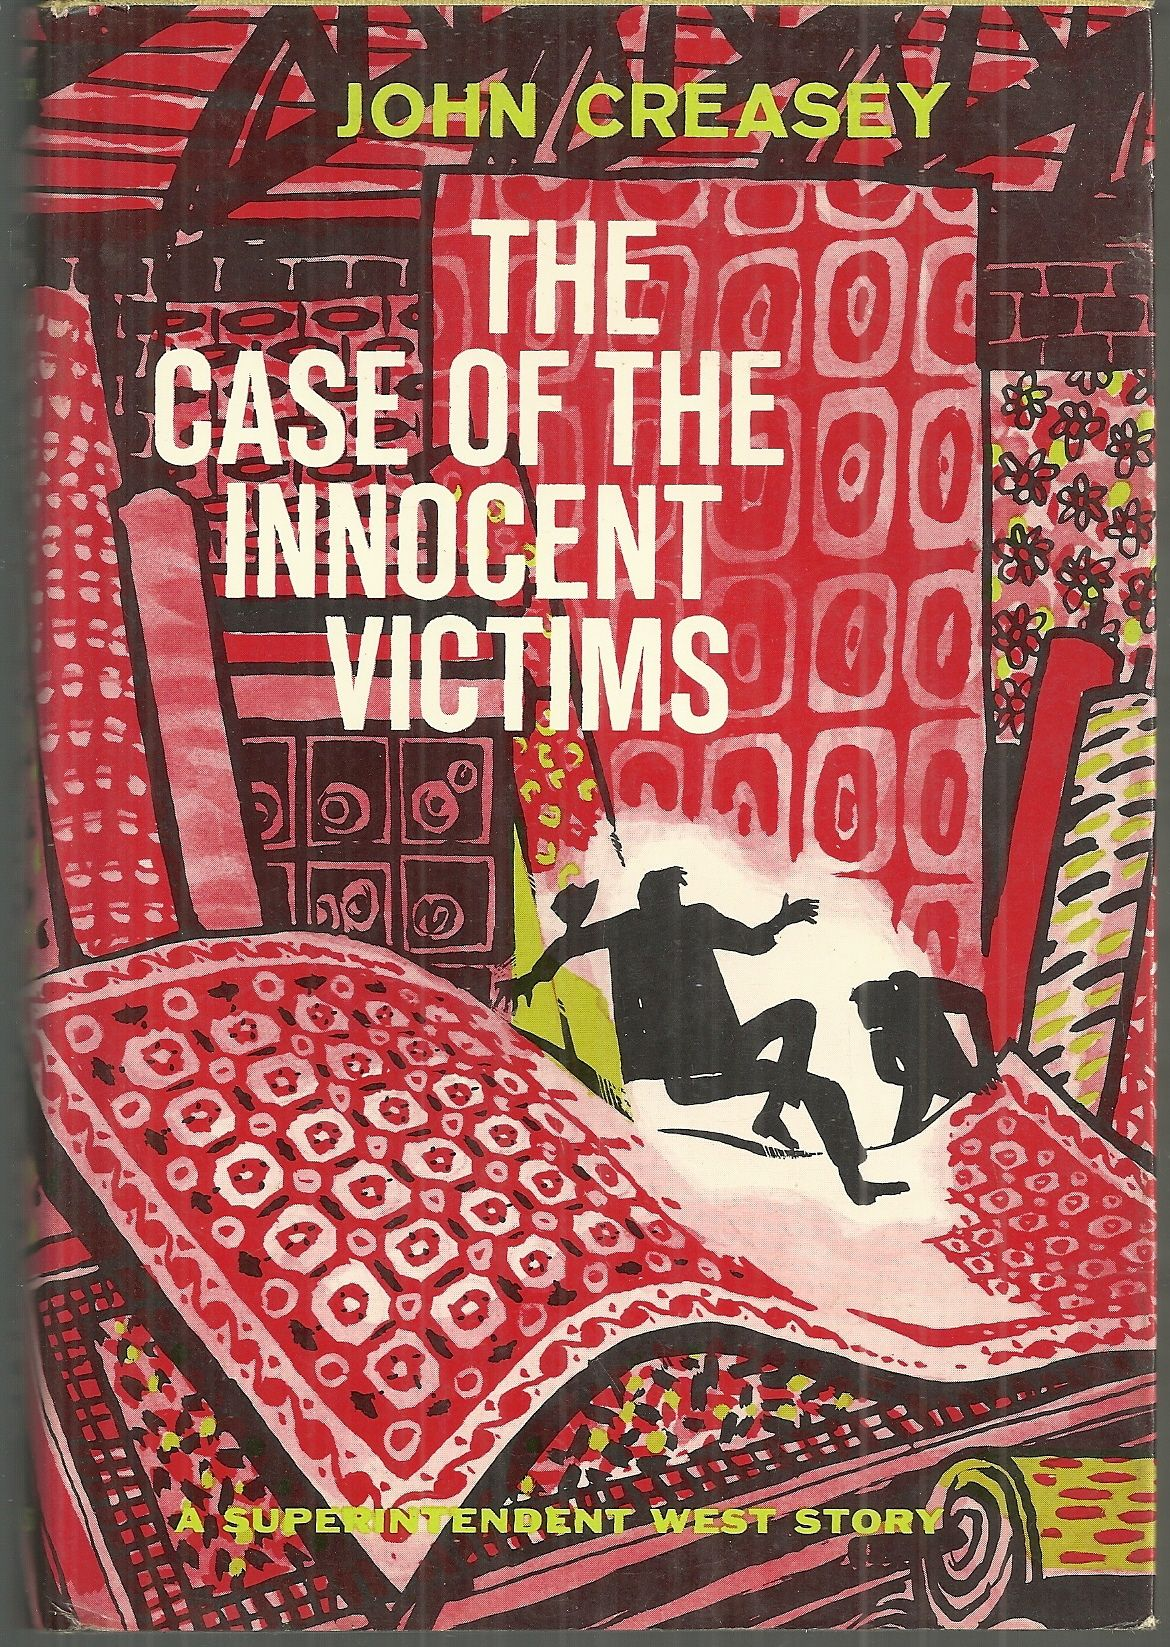 The Case of the Innocent Victims (#7180), Creasey, John